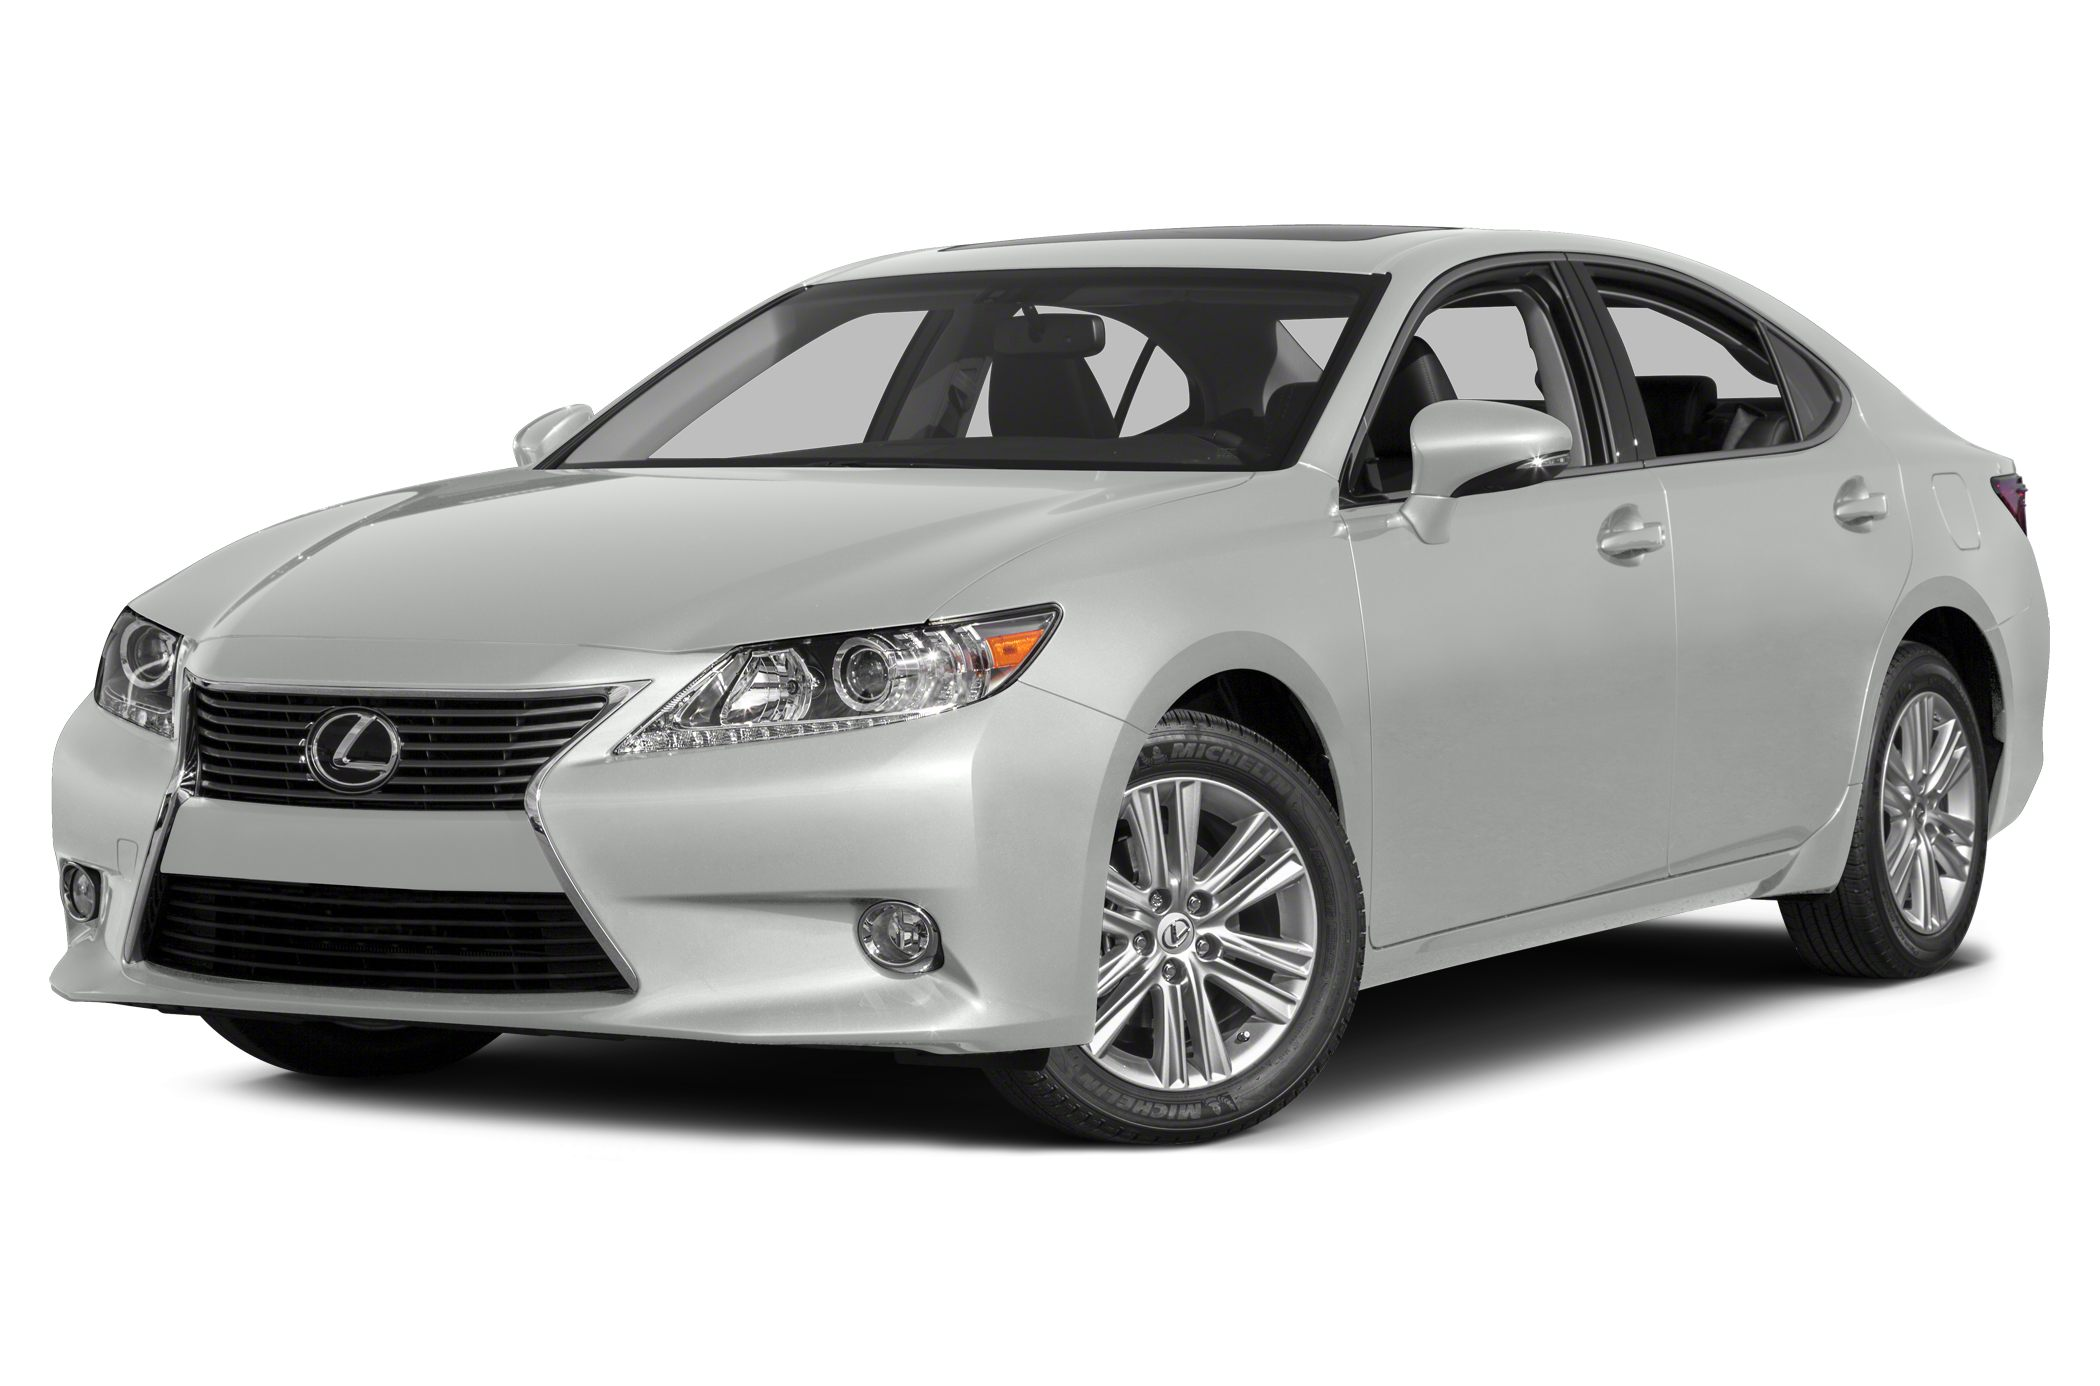 2014 Lexus ES 350 Base ES 350 4D Sedan 35L V6 DOHC Dual VVT-i 24V 6-Speed Automatic with Seque